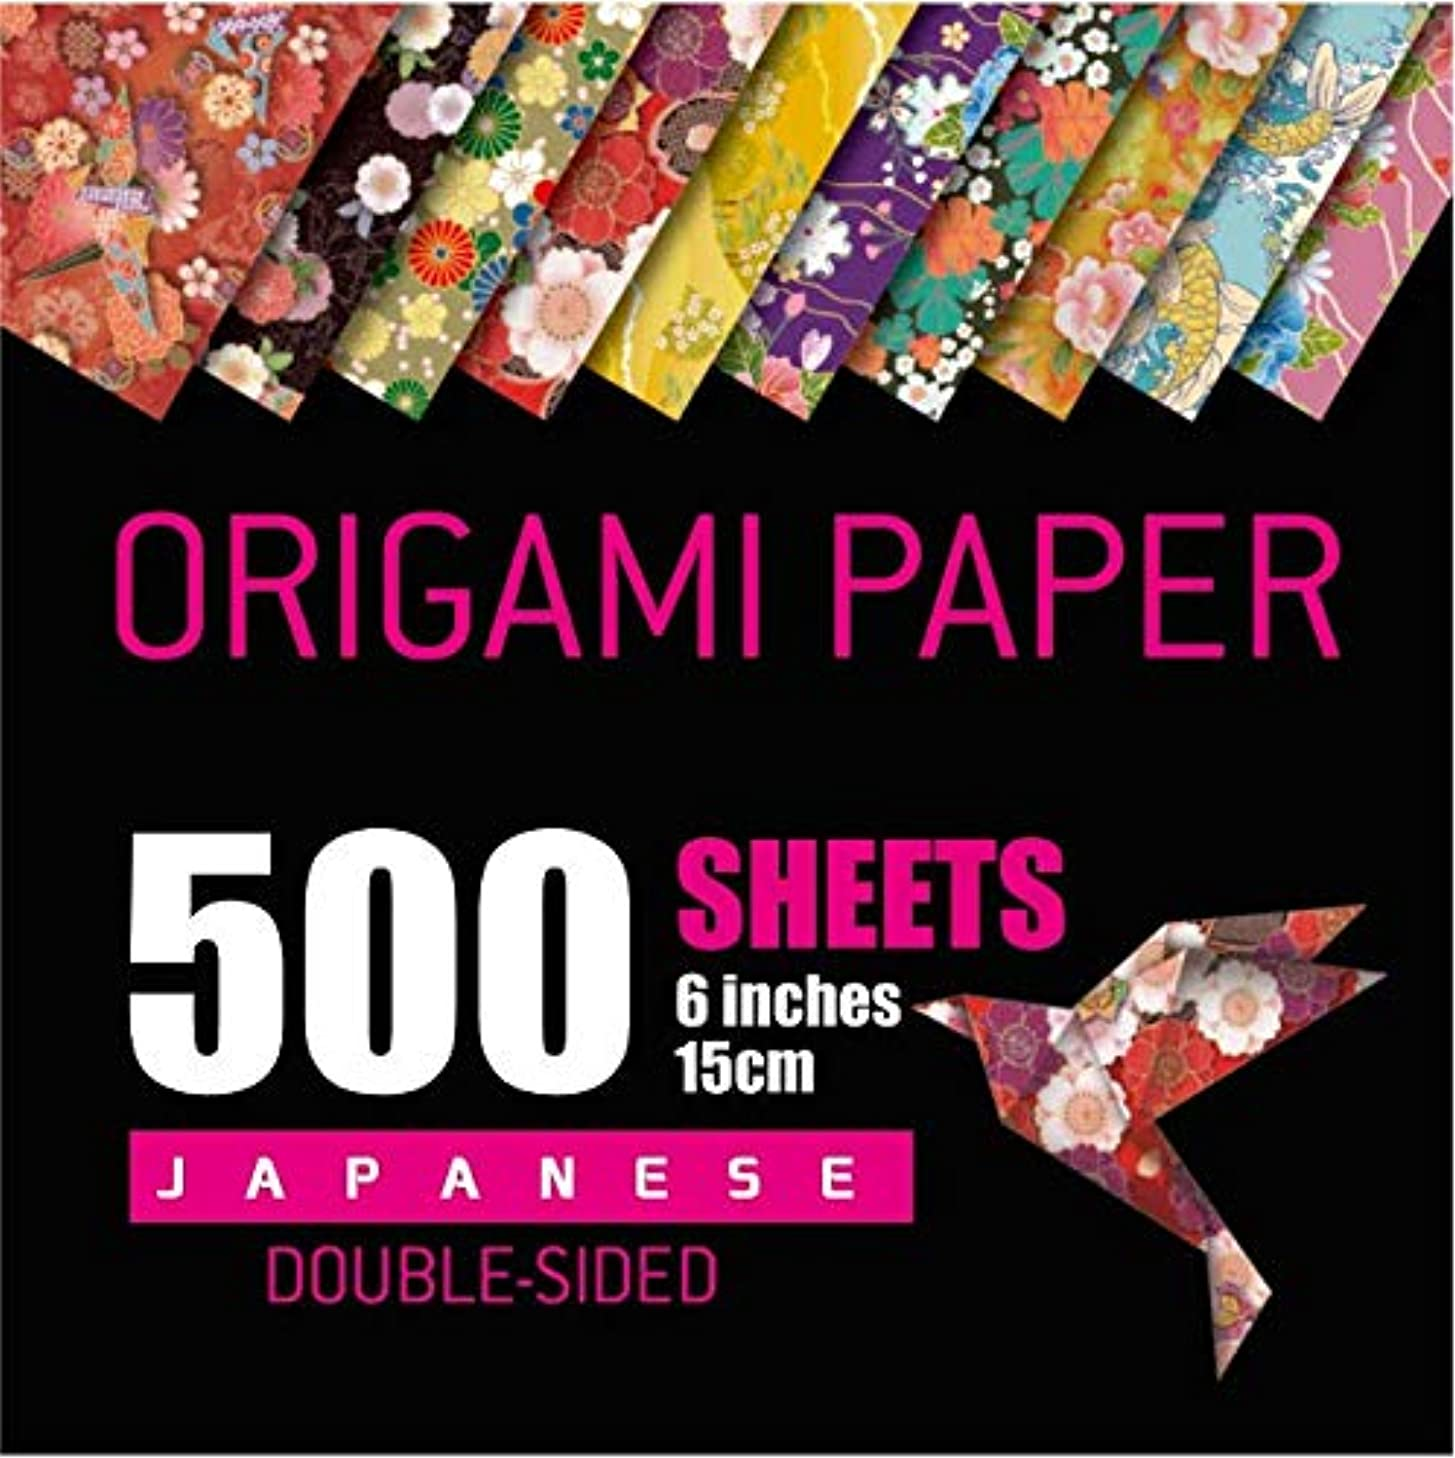 Japanese Washi Origami Paper 500 Sheets, 10 Vivid Colors, Double Sided Colors Make Colorful and Easy Origami,6 Inch Square Sheet, for Kids & Adults, Papers, Arts and Crafts Projects (E-Book Included)